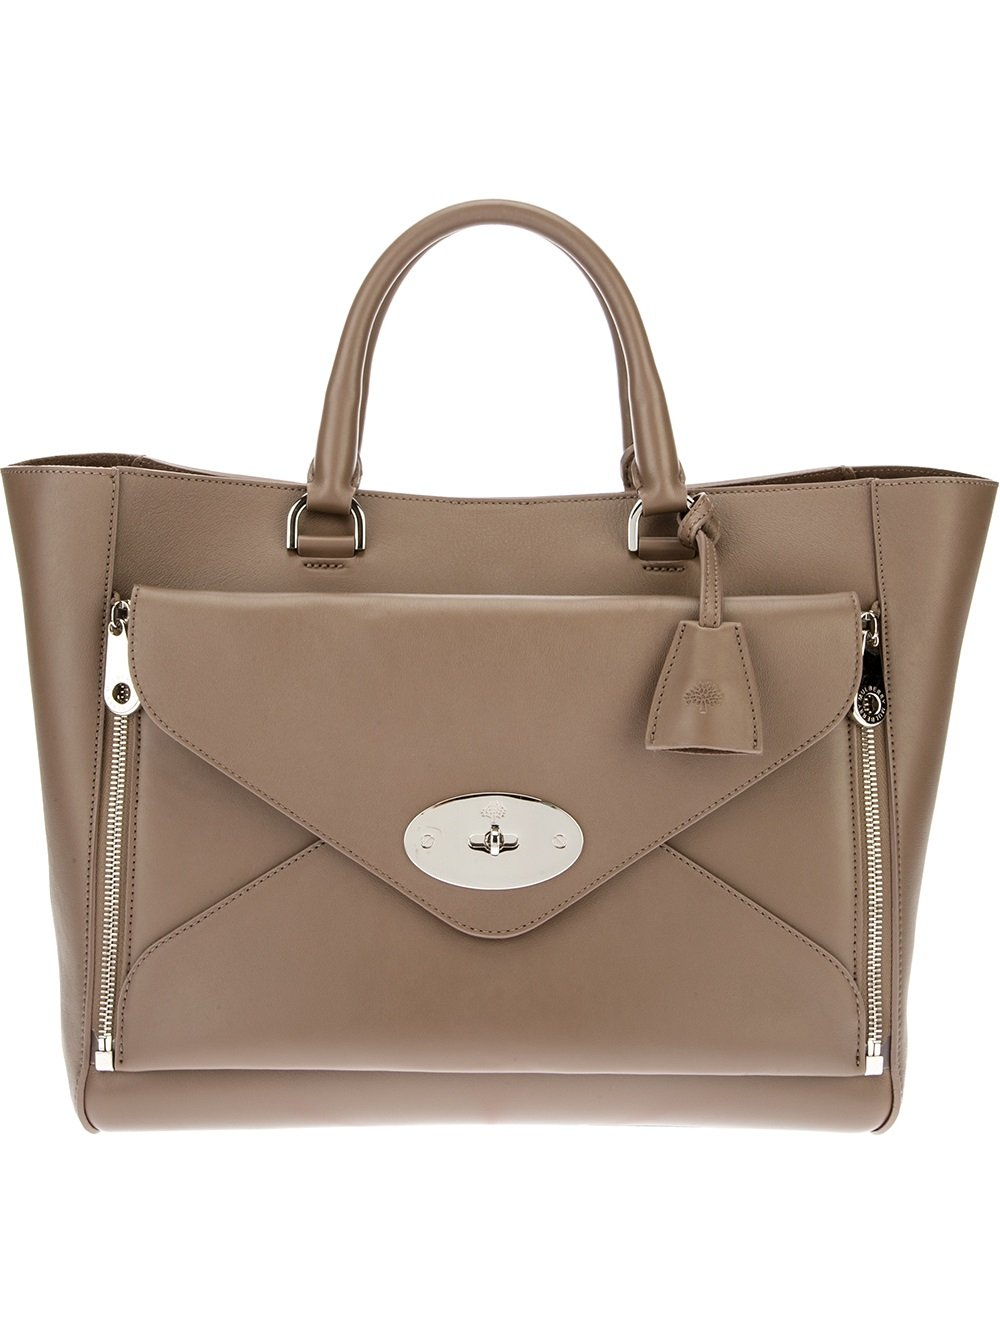 ff644ece2639 Lyst - Mulberry Willow Tote in Gray